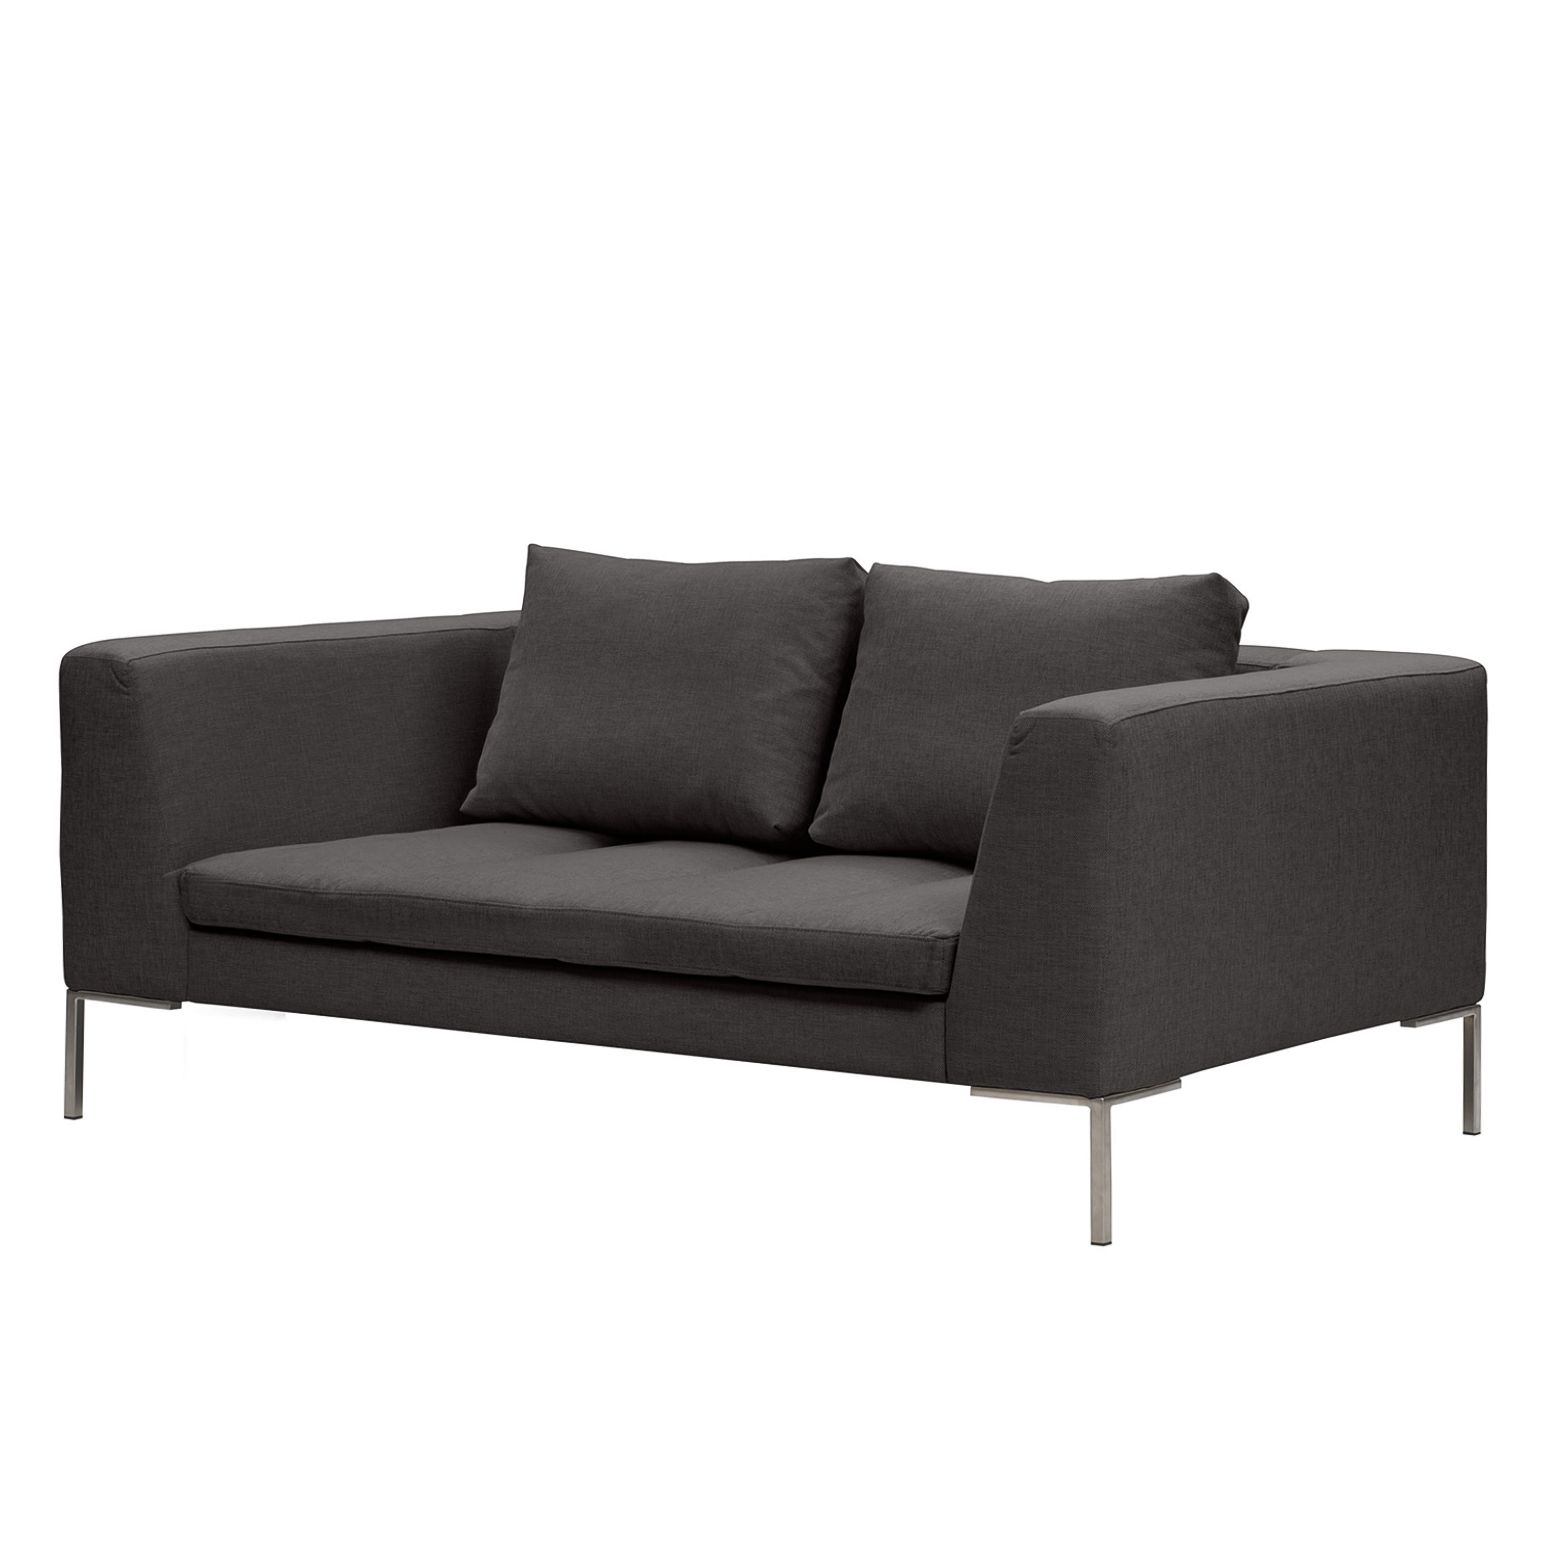 Sofa Madison (2-Sitzer) Webstoff - Stoff Anda II Anthrazit